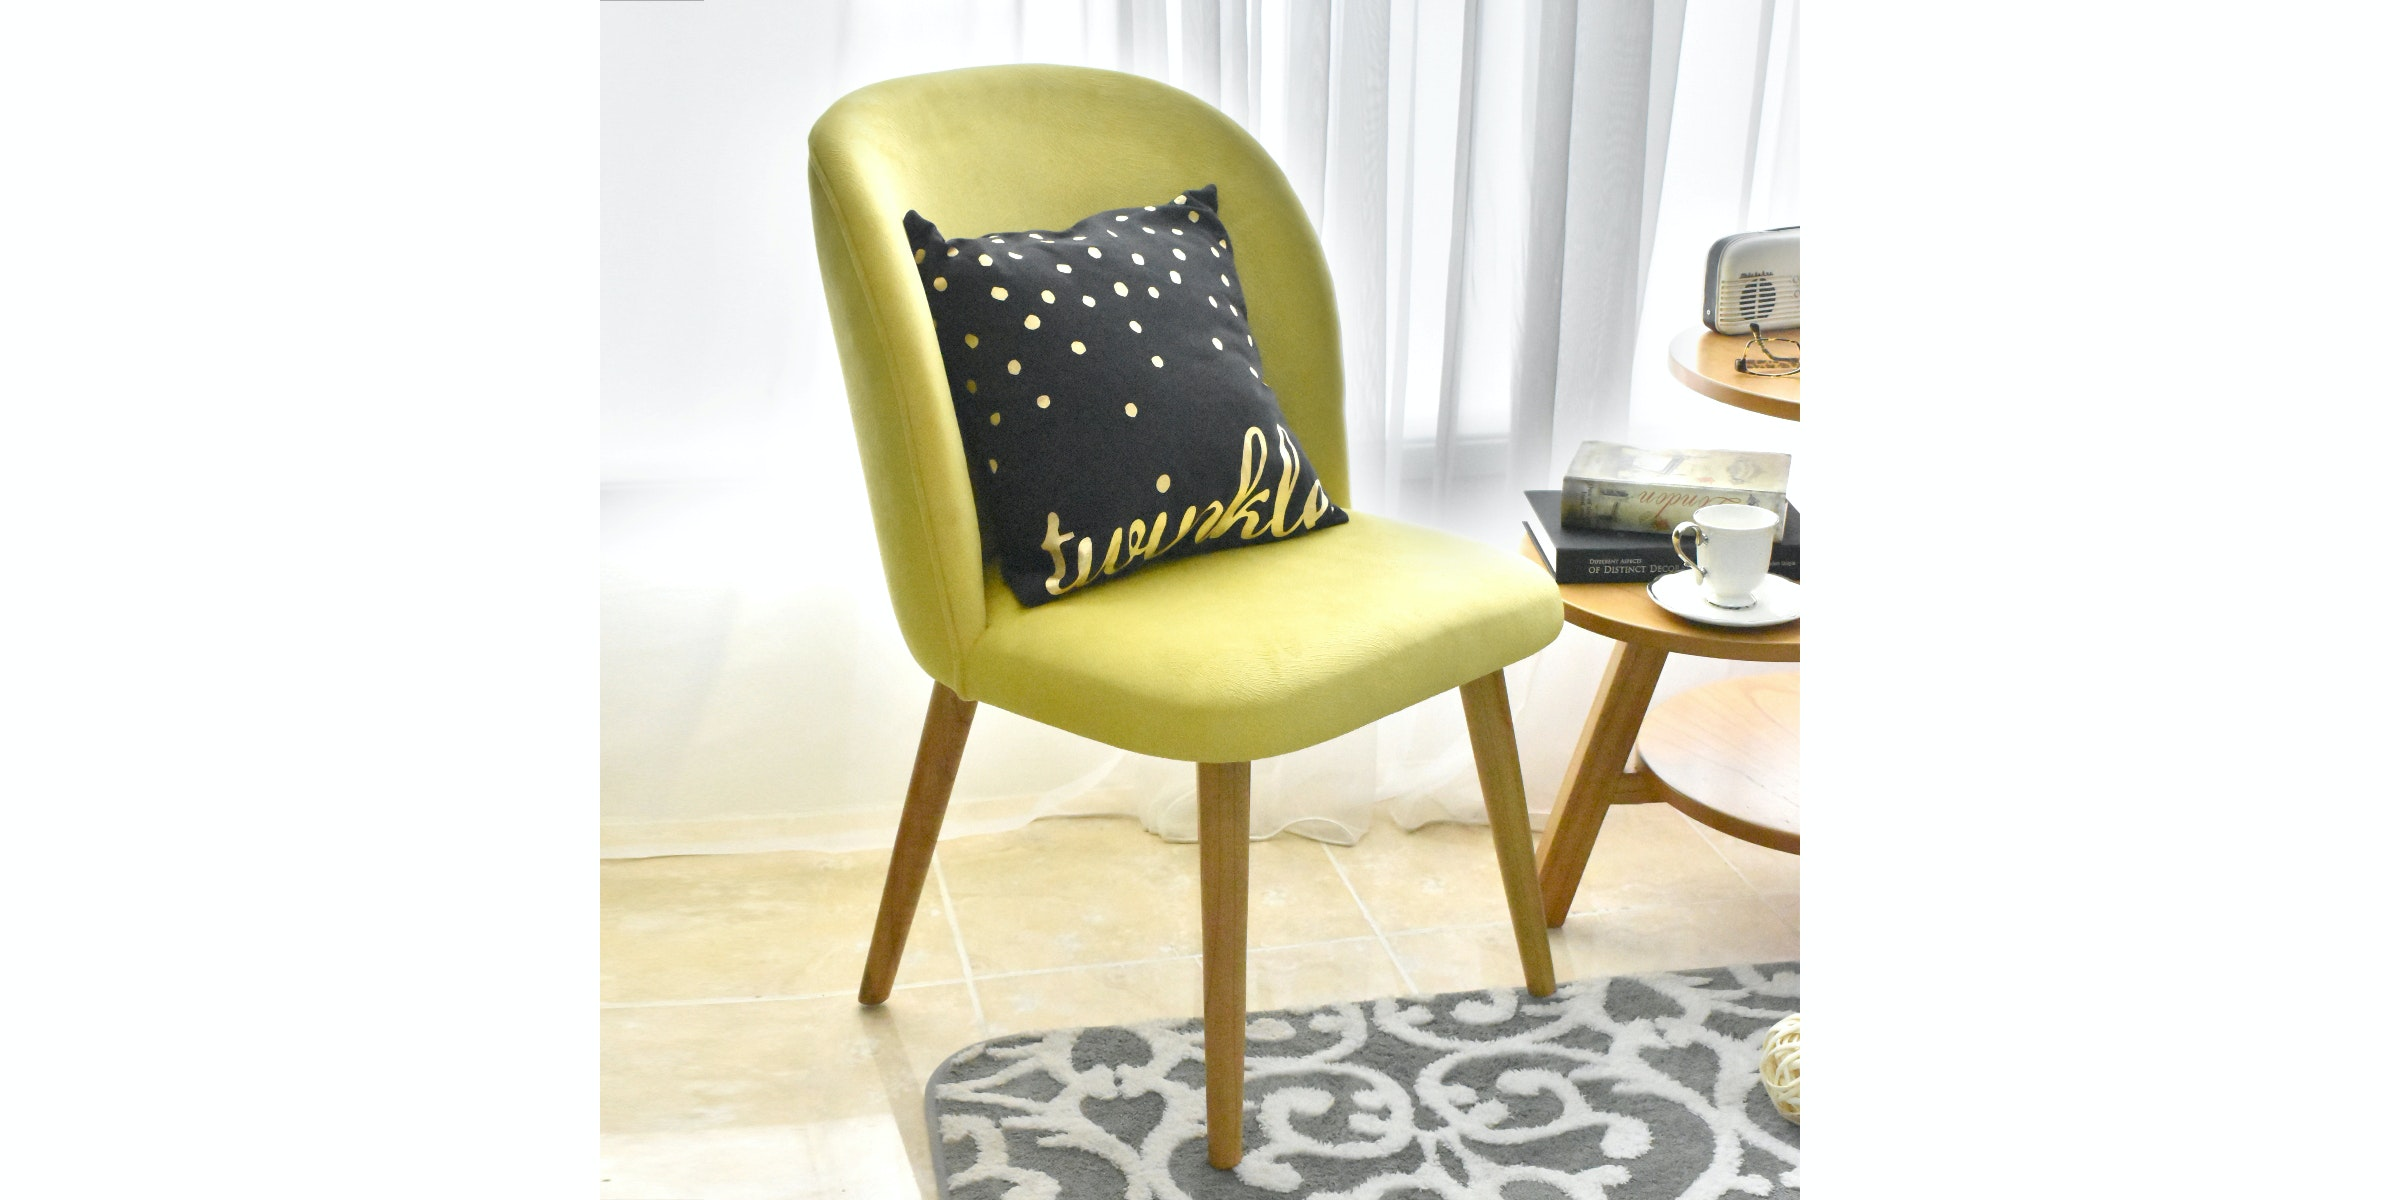 Livien Kursi Sofa Issabel Yellow Chair